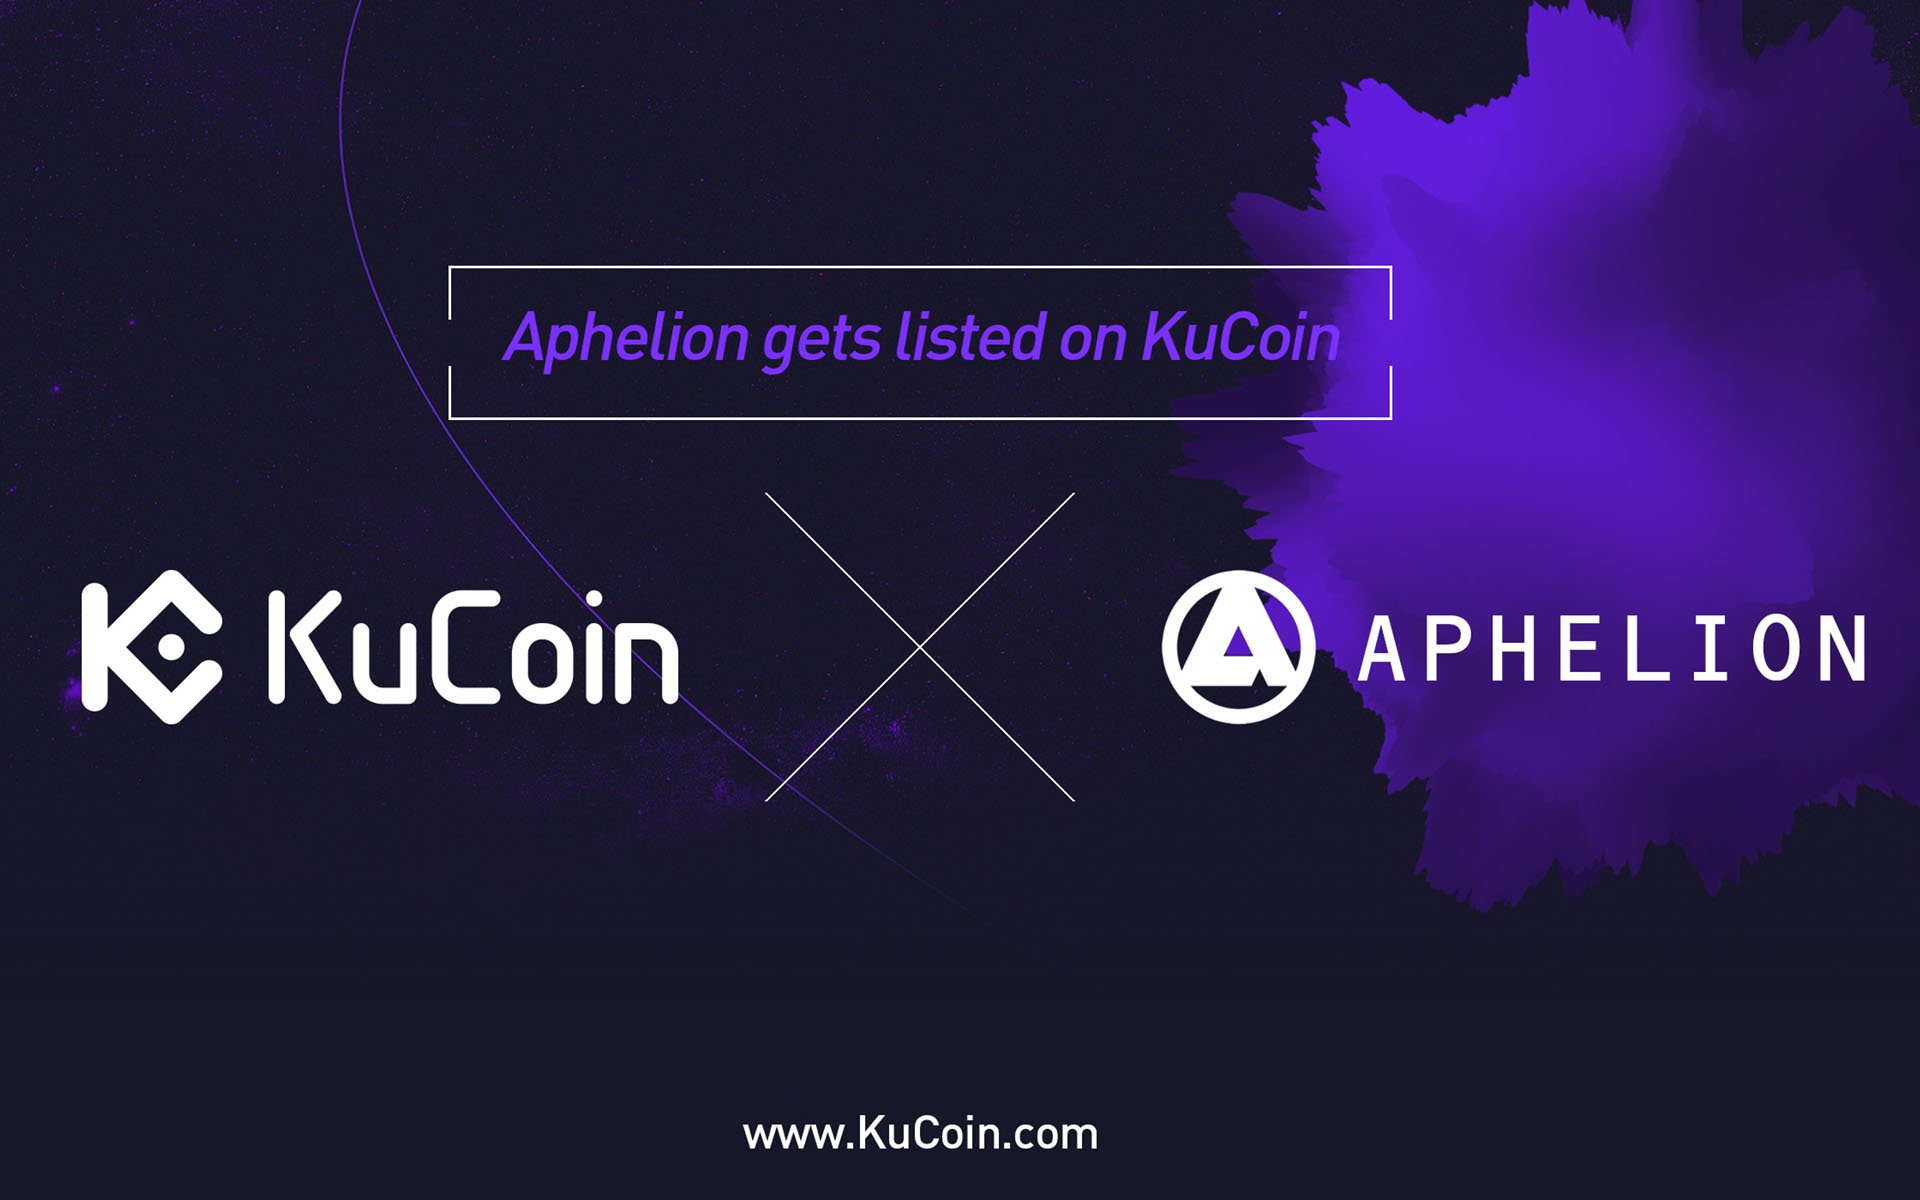 Aphelion (APH) Gets Listed on KuCoin!